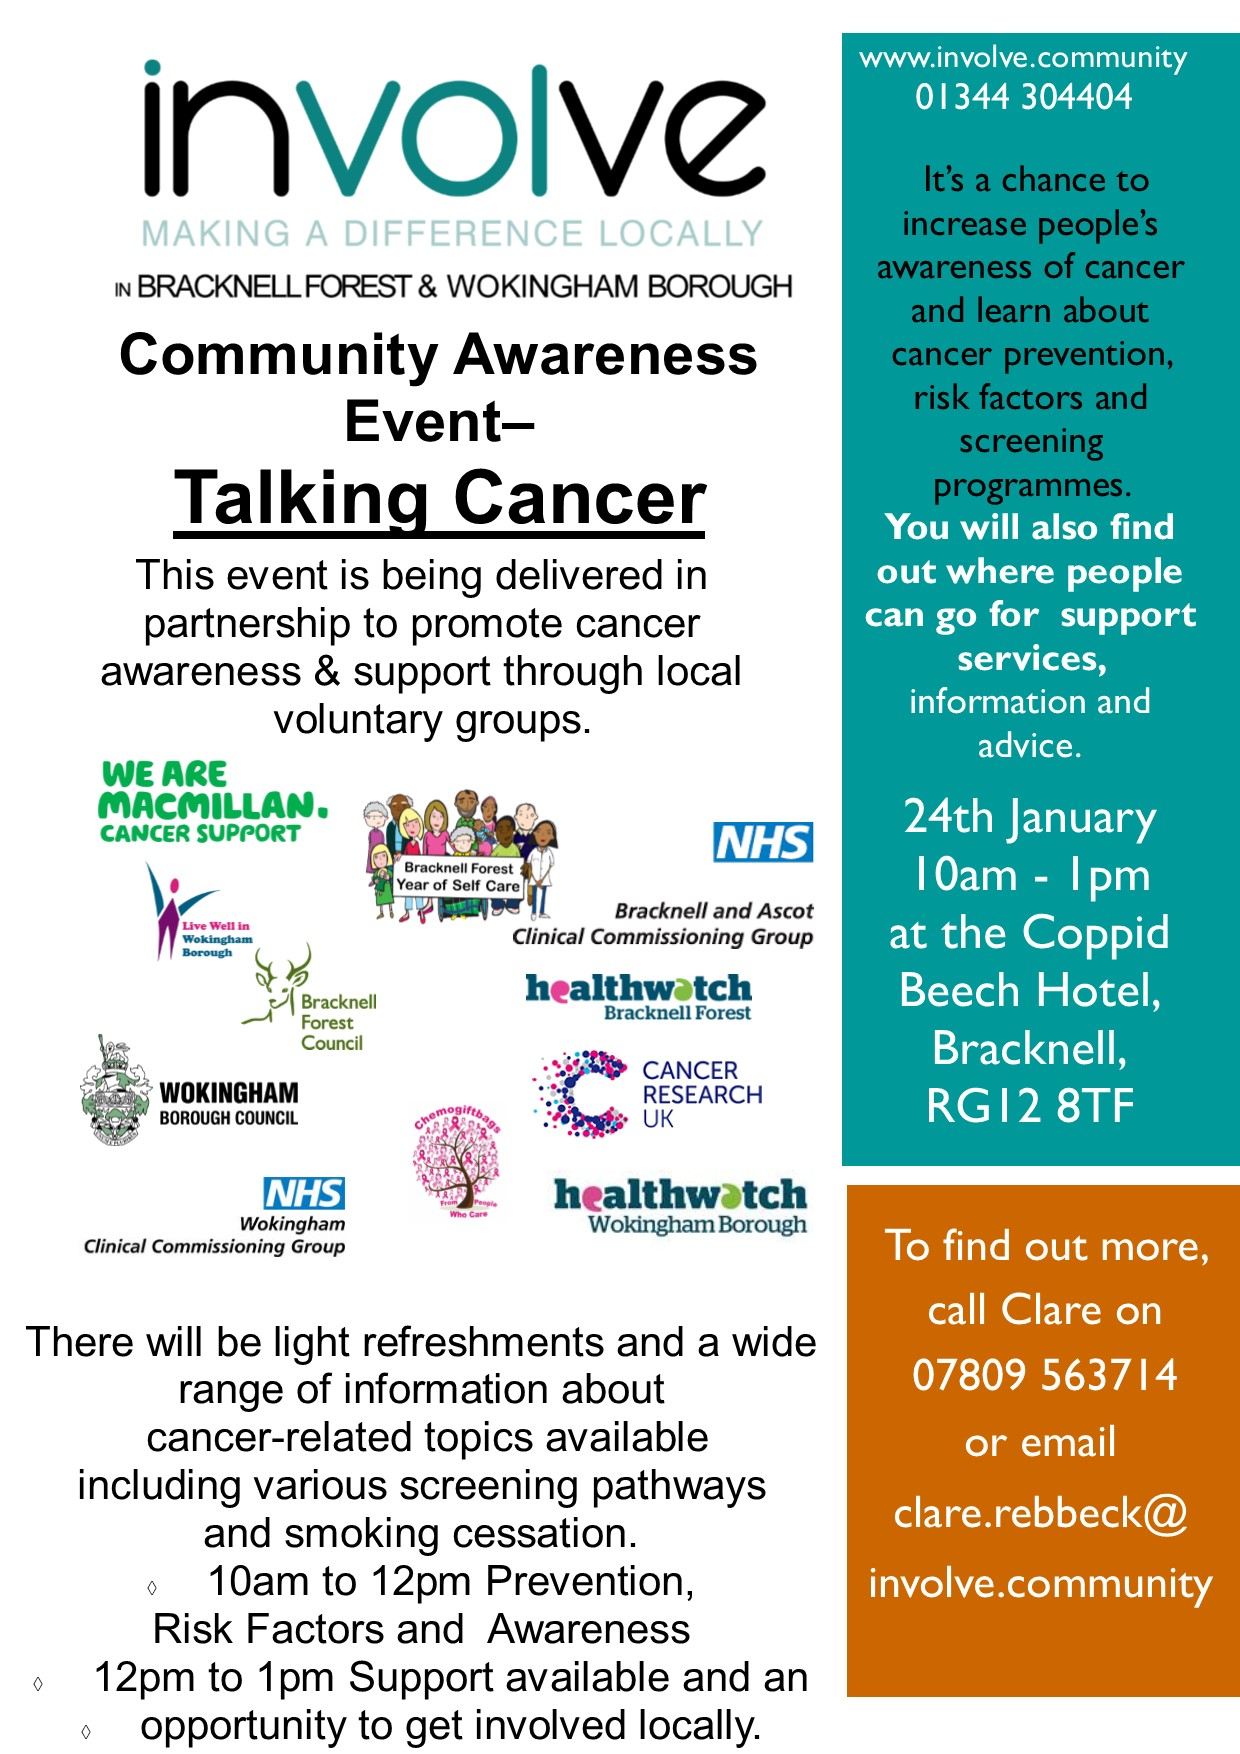 FINAL Talking Cancer Awareness Event Leaflet 003